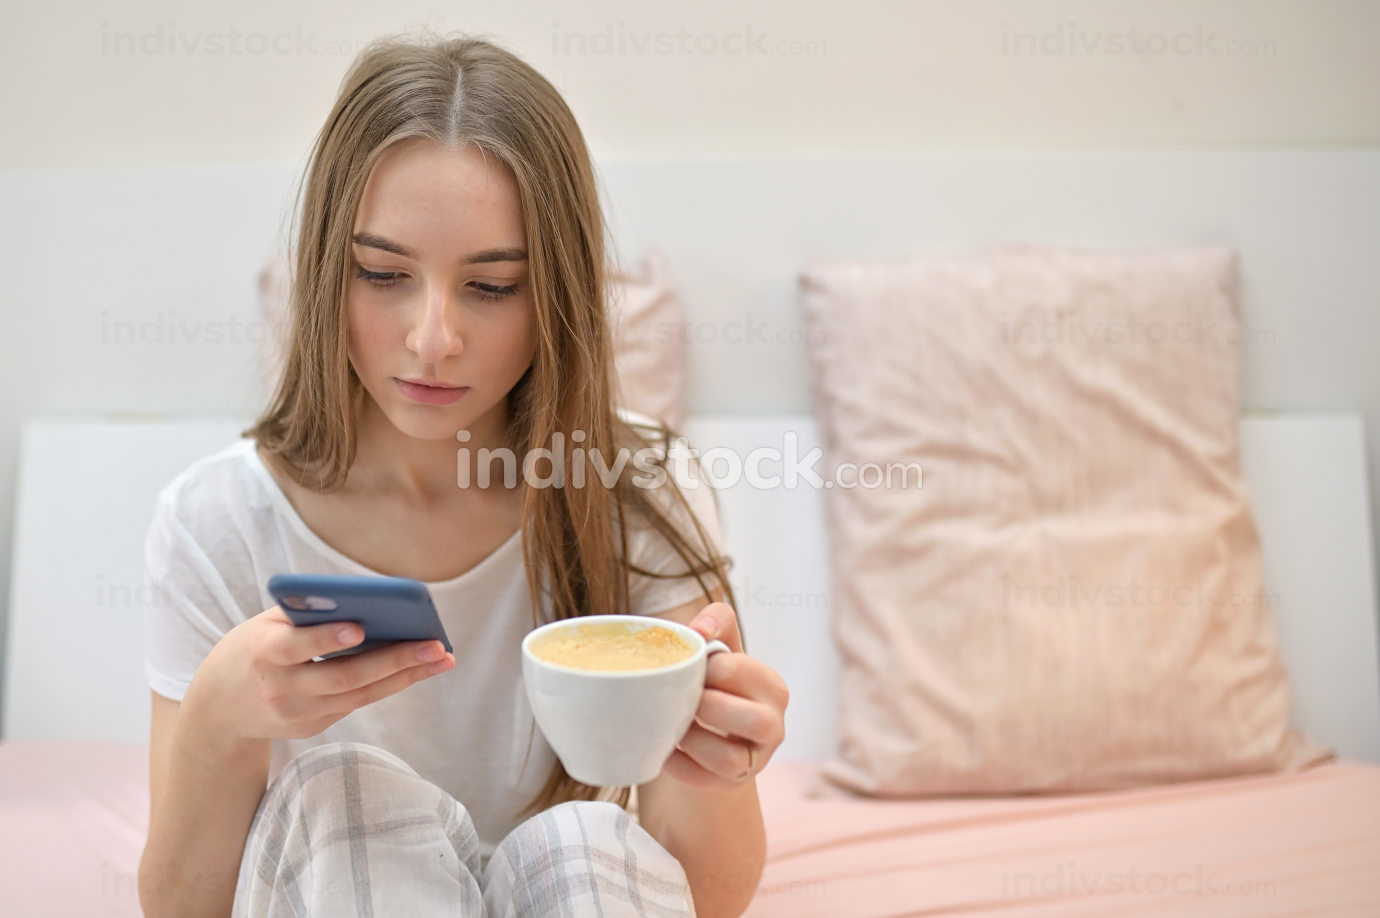 Girl With Cup Of Coffee In Bedroom